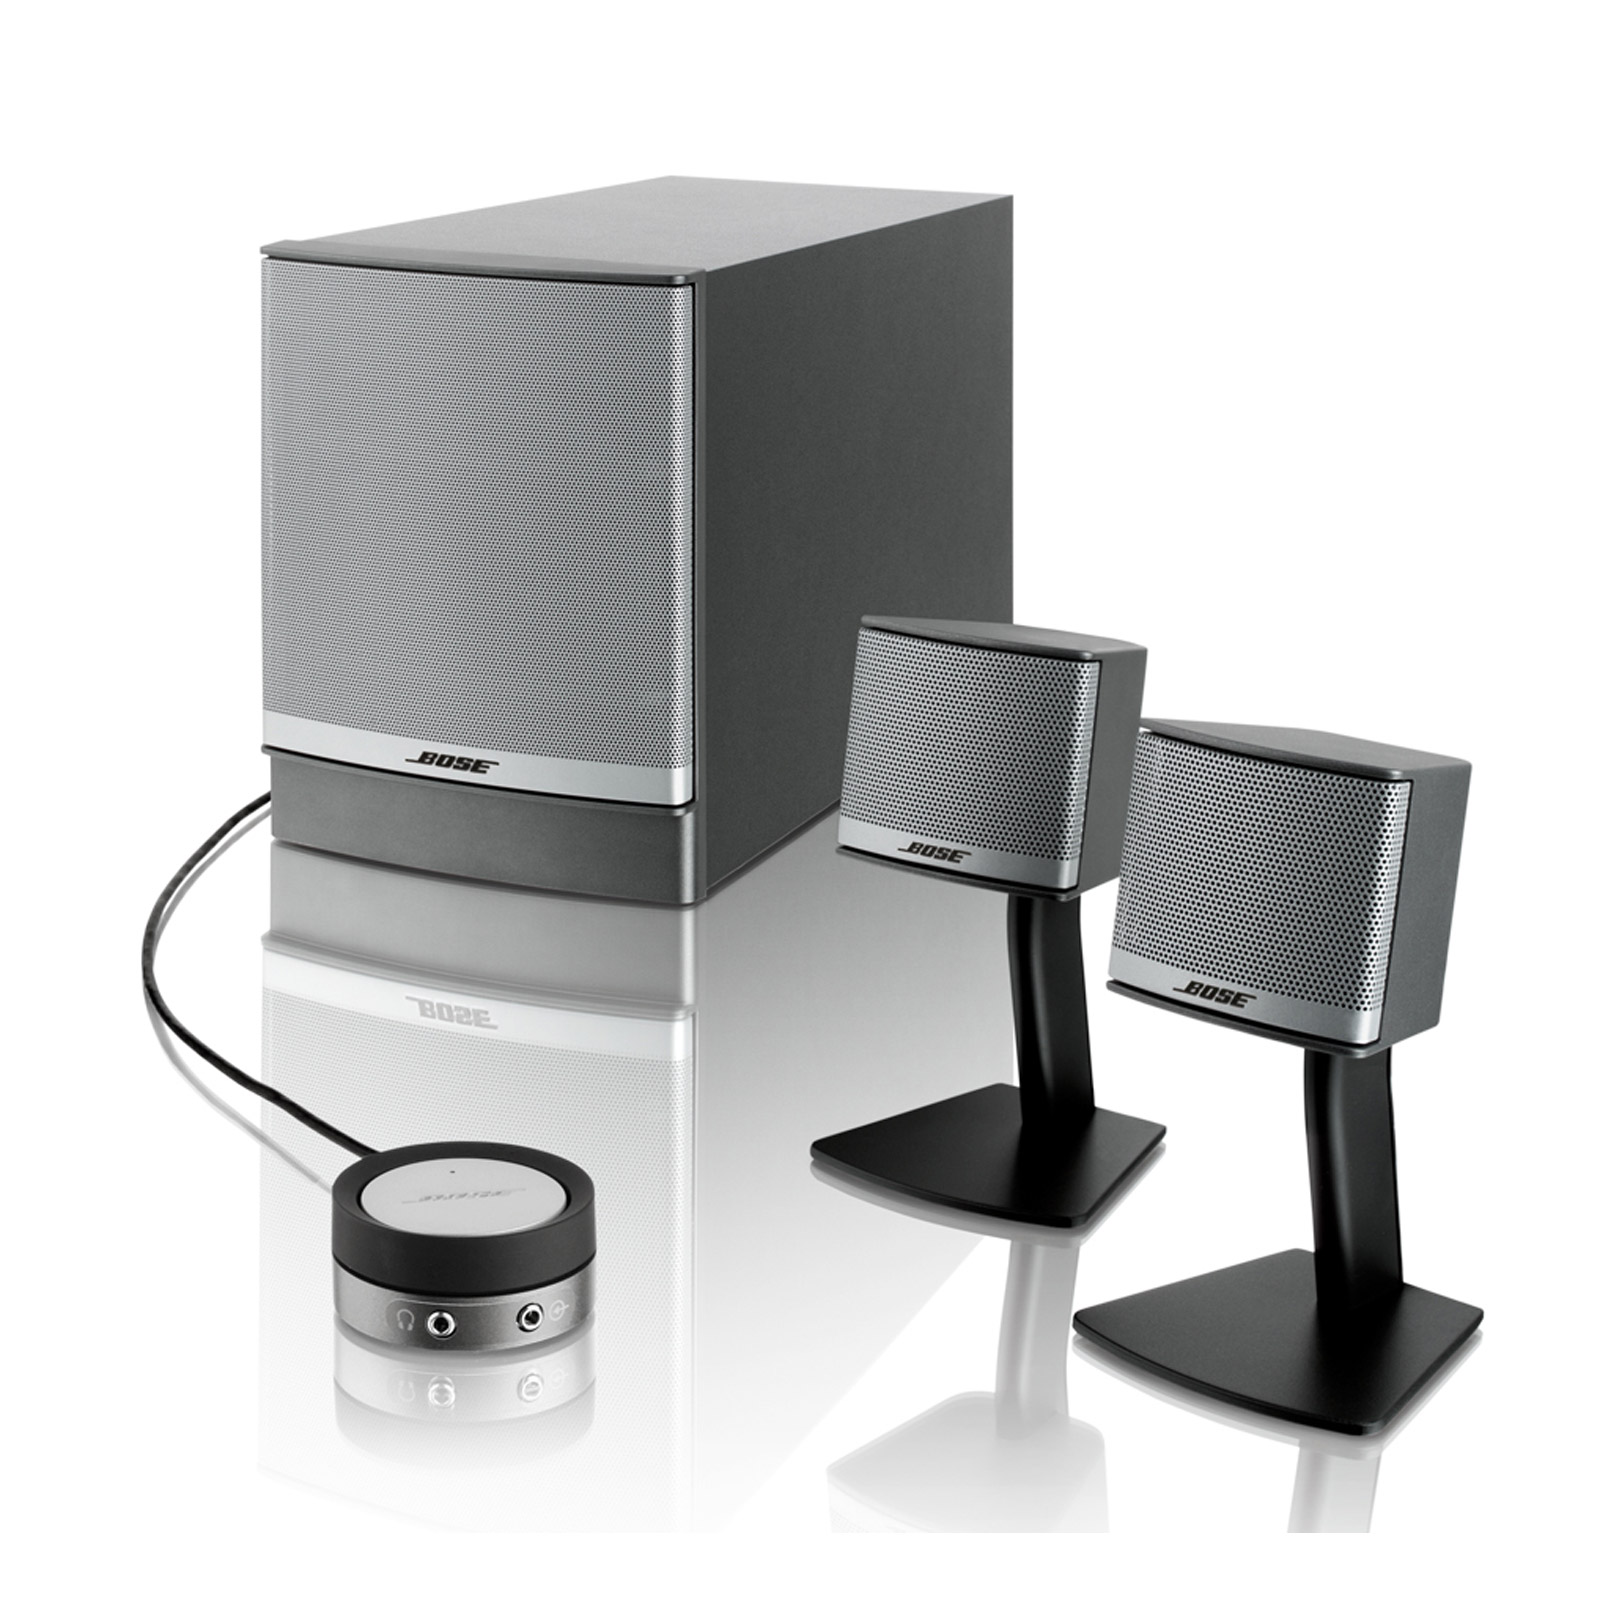 bose companion 3 enceinte pc bose sur ldlc. Black Bedroom Furniture Sets. Home Design Ideas